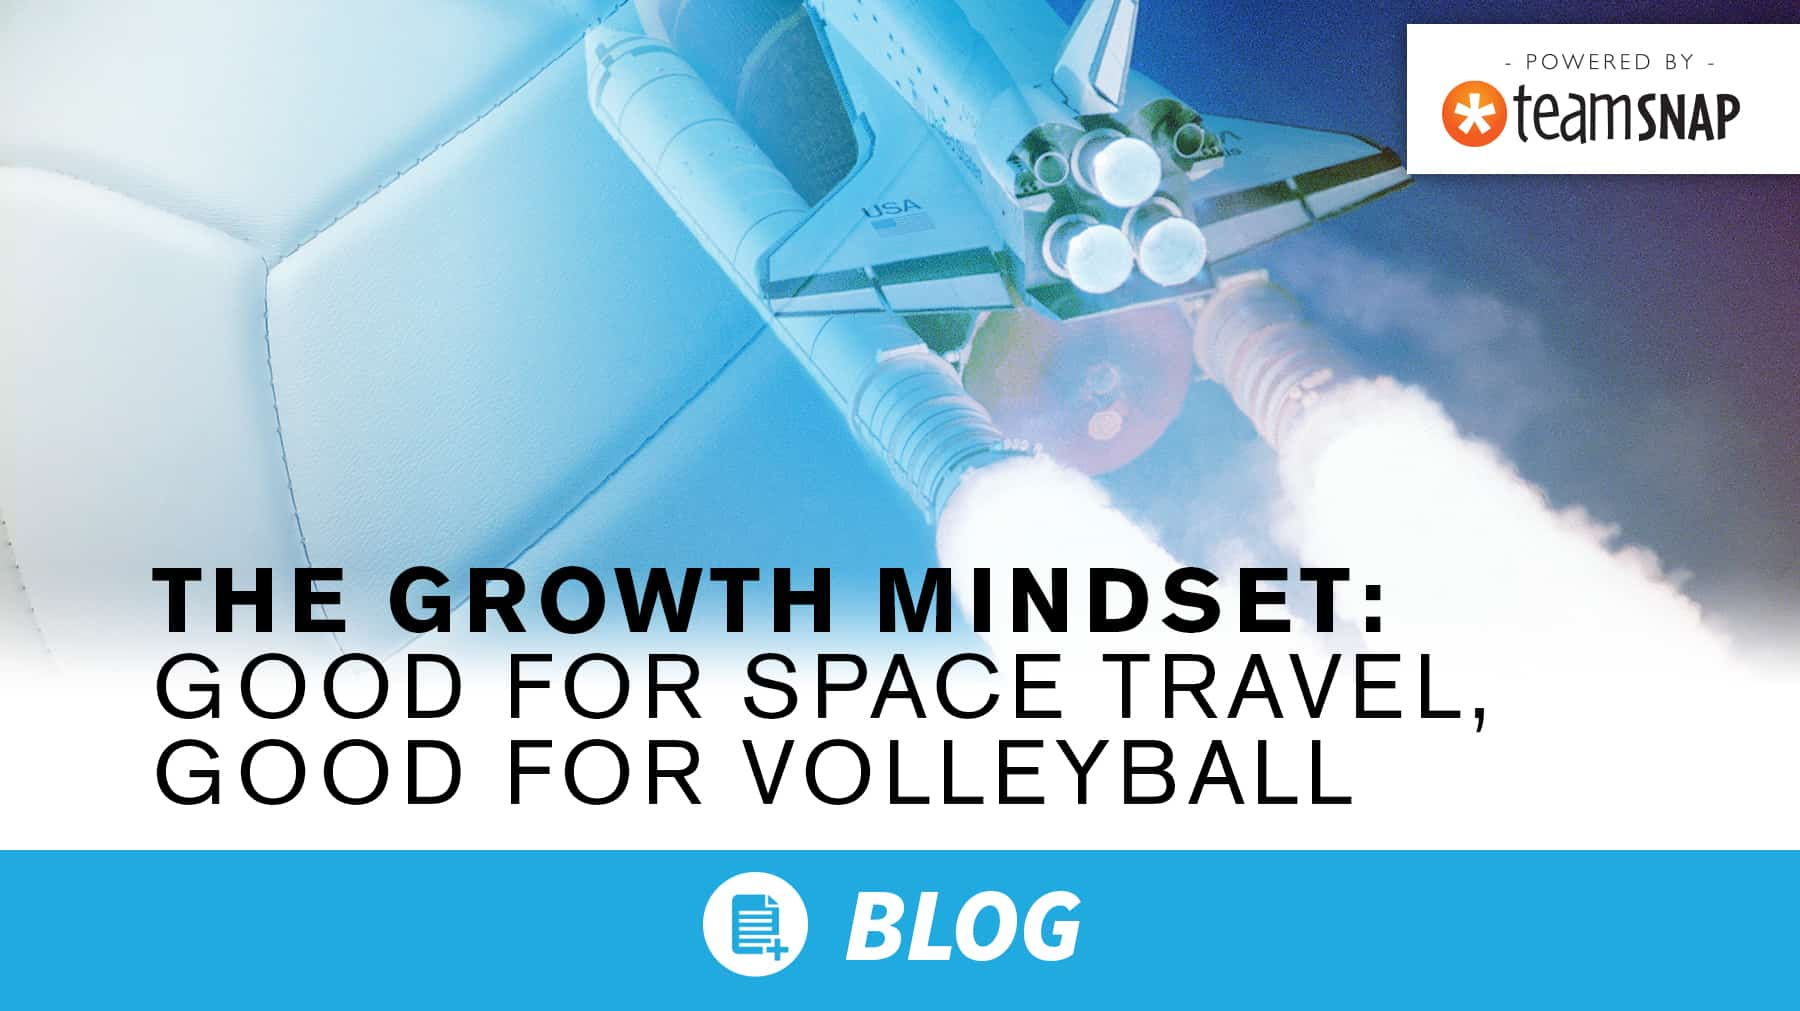 The growth mindset: good for space travel, good for volleyball